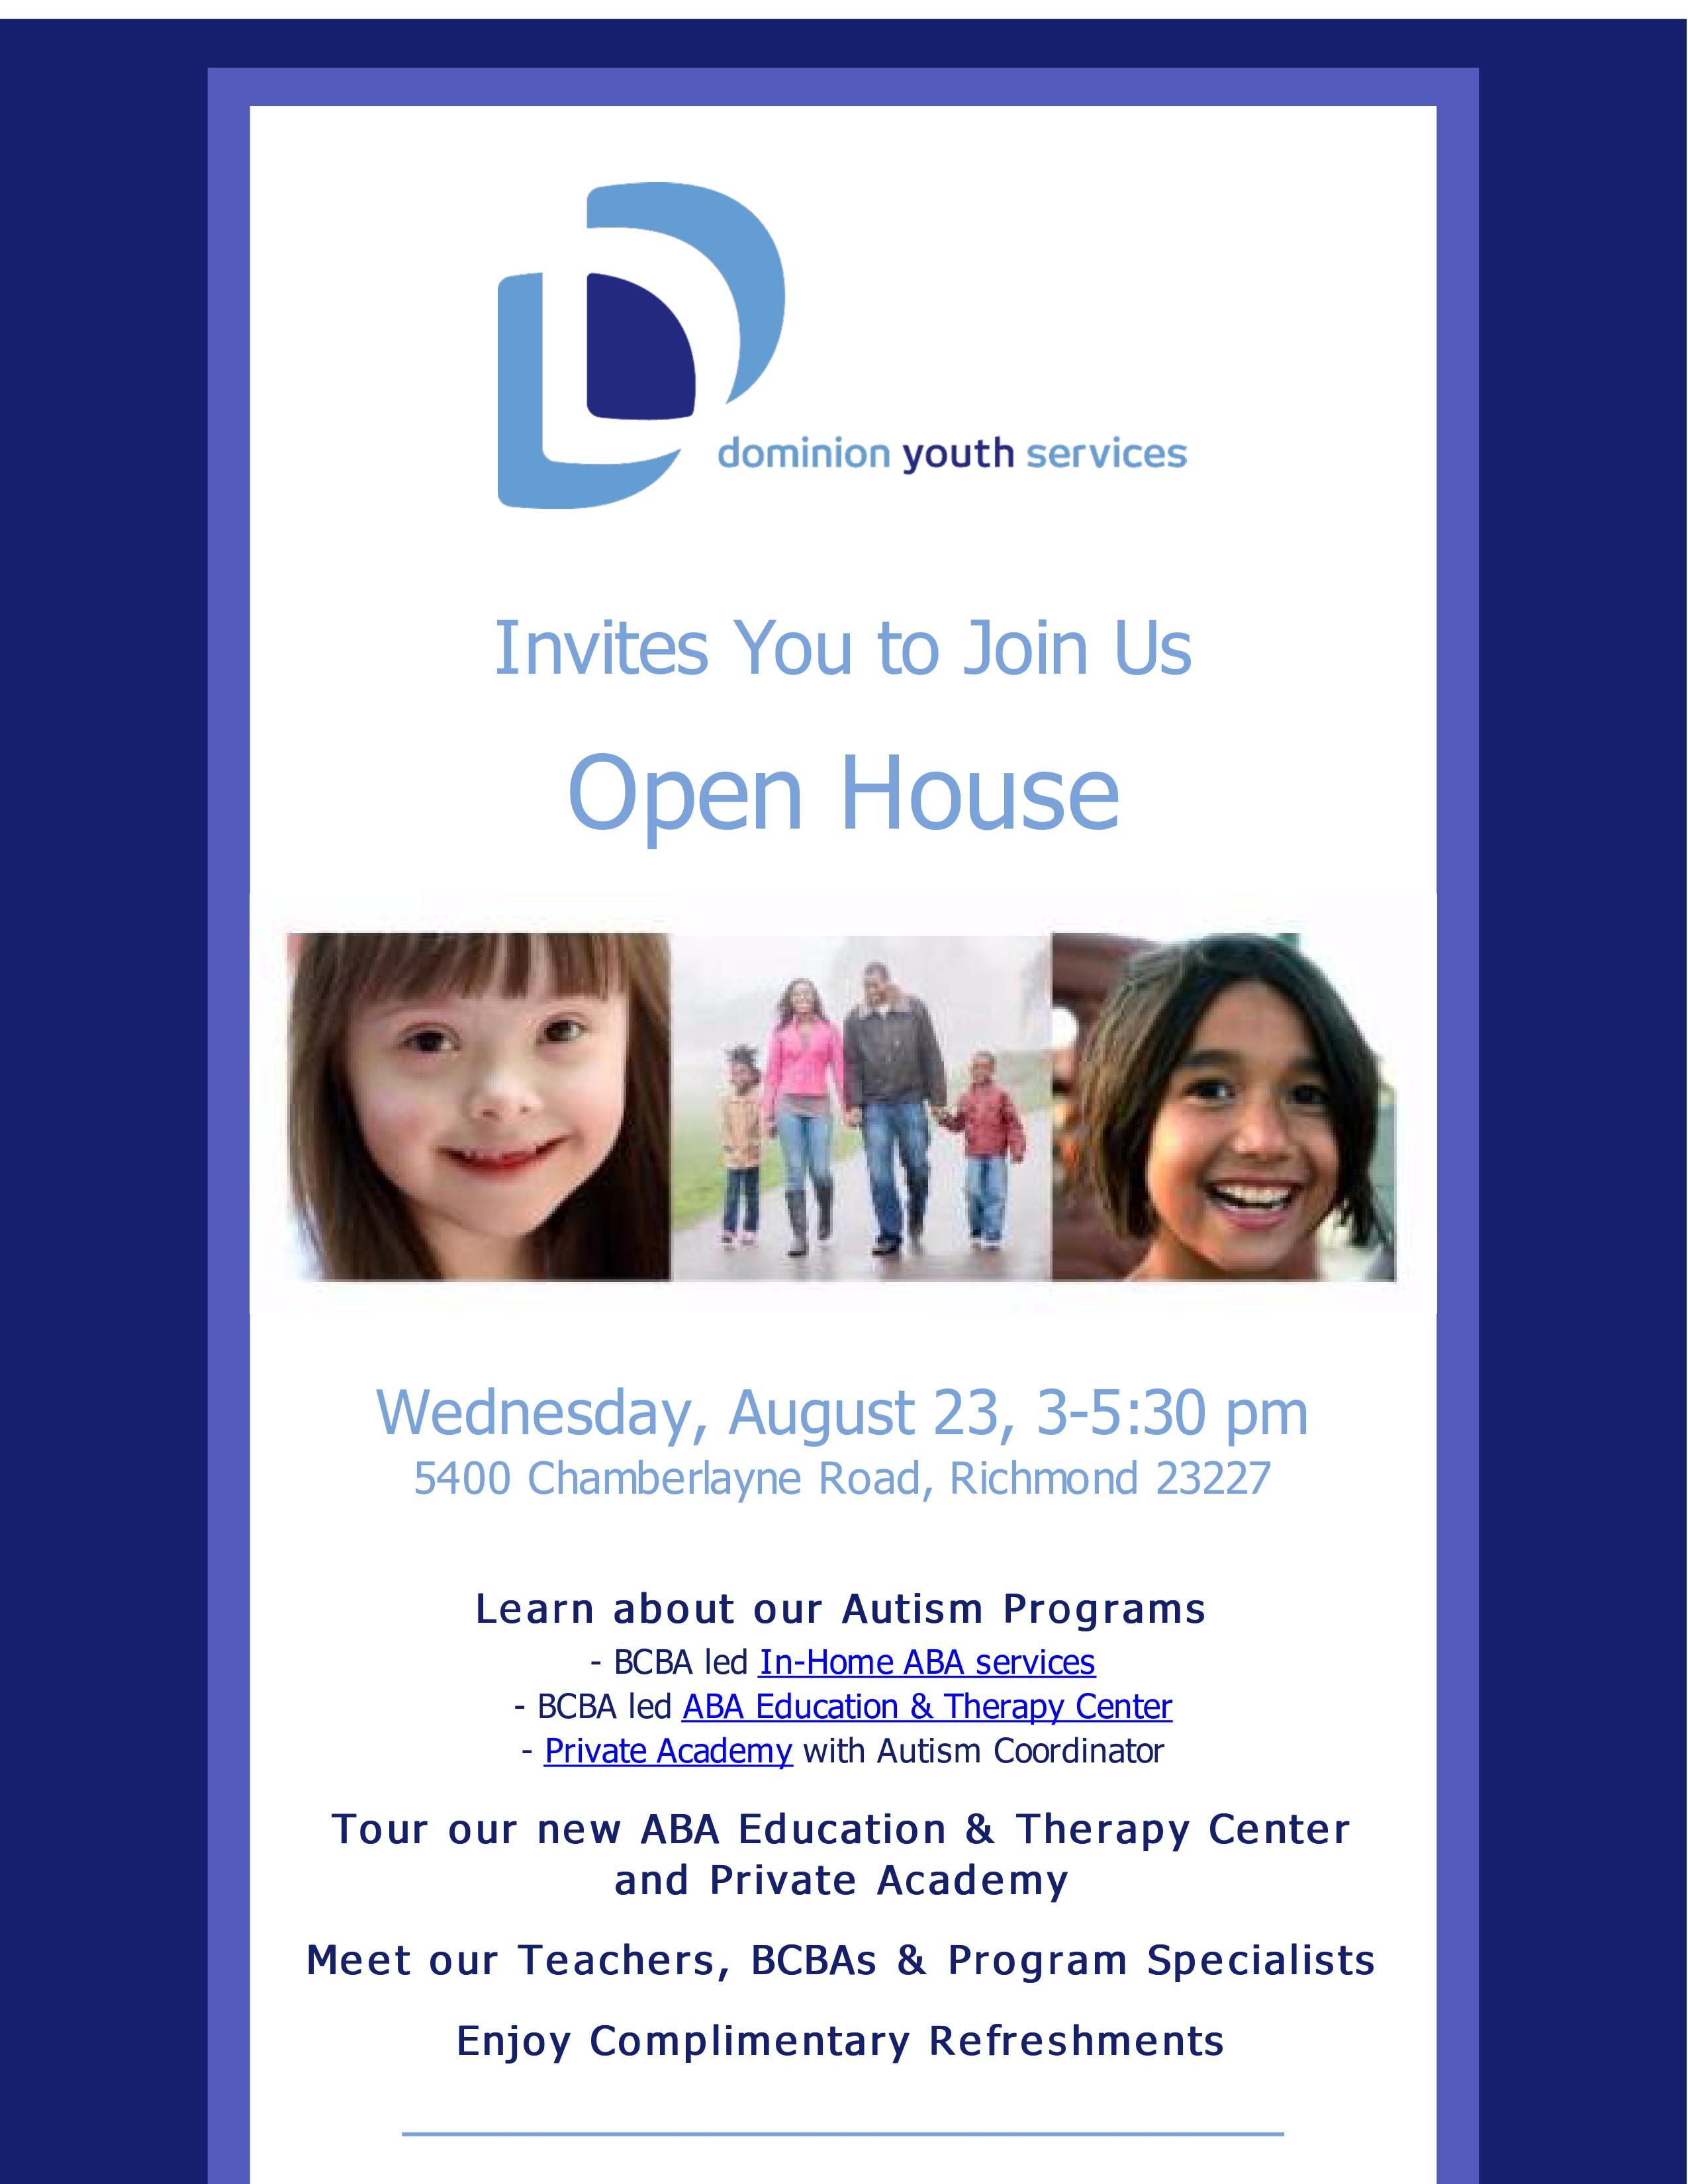 Refer Children with Autism or Similar Challenges?  Join us for our Open House on Wednesday, August 23, 3-5:30 pm!